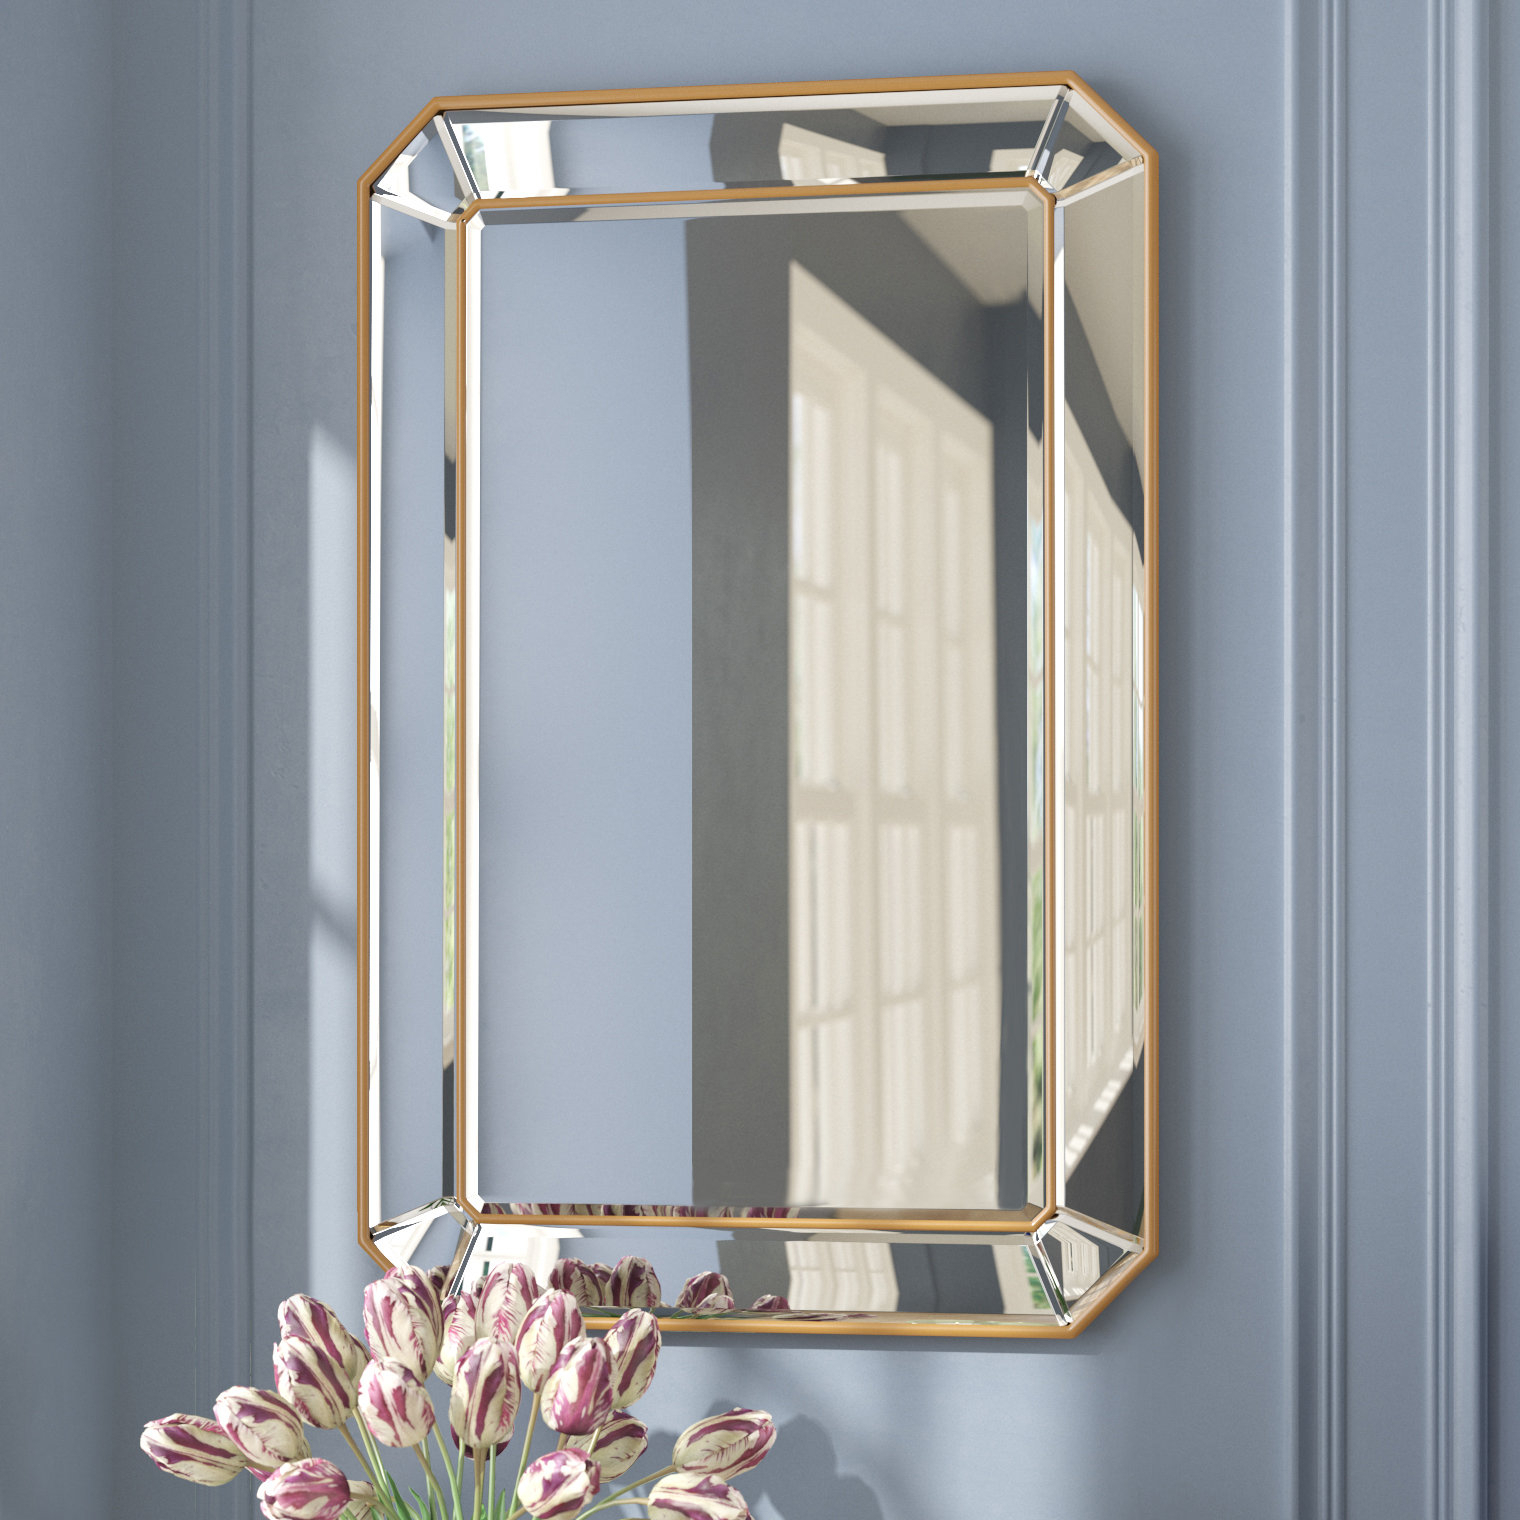 Broadmeadow Accent Wall Mirror | Wayfair In Broadmeadow Glam Accent Wall Mirrors (View 5 of 20)